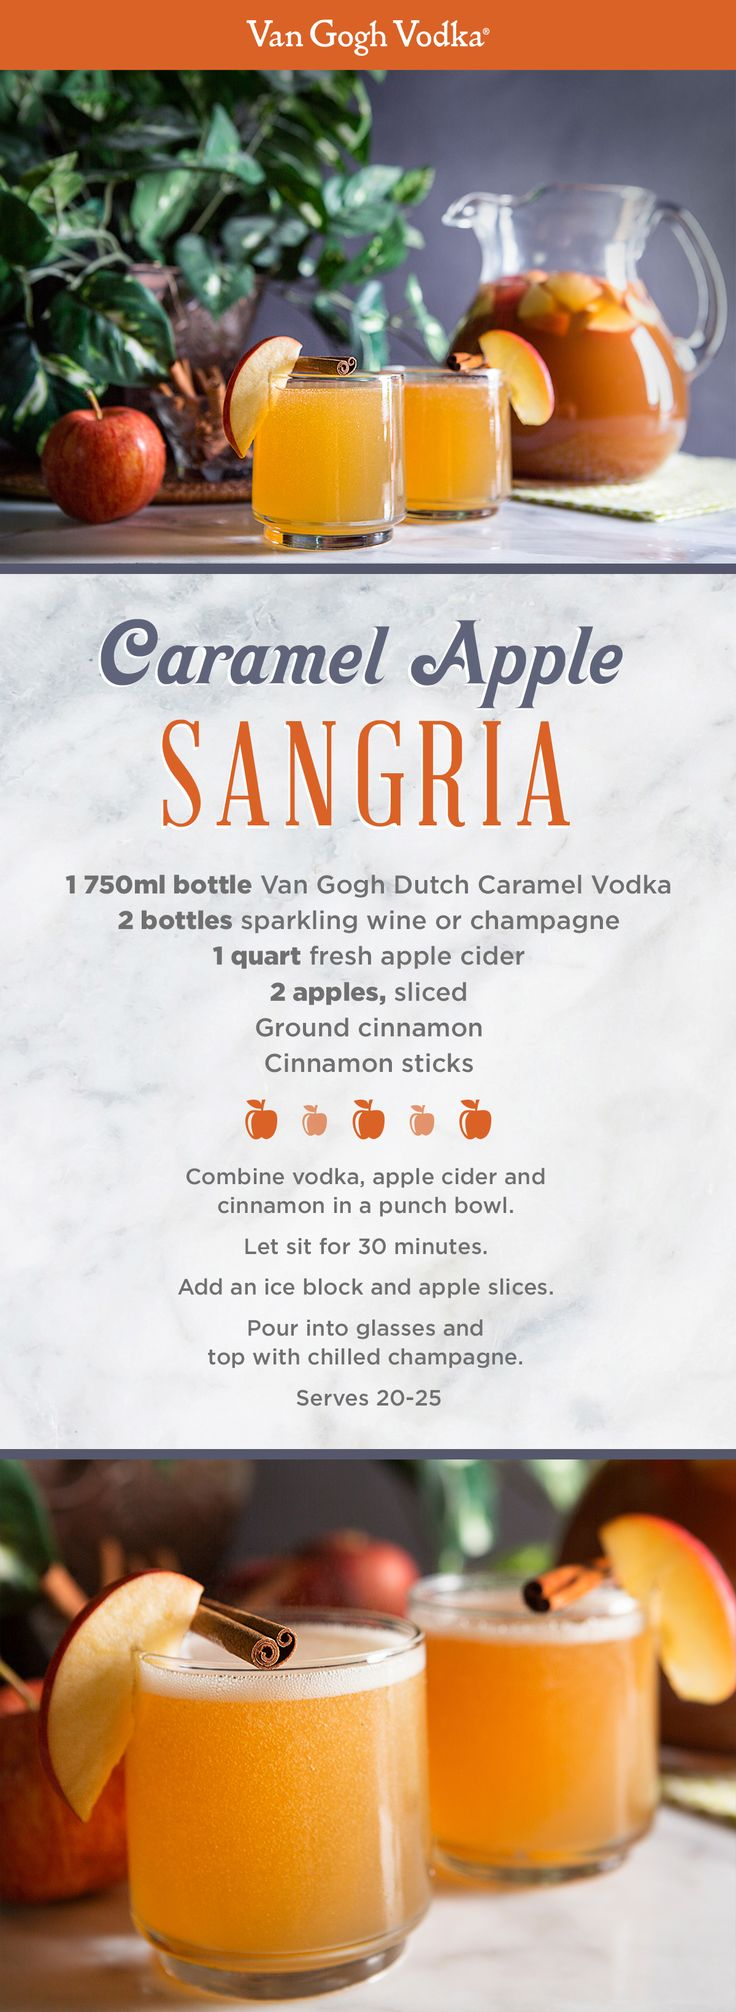 Top off the party with a Caramel Apple Sangria cocktail. Ingredients: 1 750ml bottle Van Gogh Dutch Caramel Vodka, 2 bottles sparkling wine or champagne, 1 quart fresh apple cider, 2 apples, sliced,  and ground cinnamon/cinnamon sticks to taste. Directions: Combine vodka, apple cider and cinnamon in a punch bowl. Let sit for 30 minutes. Add an ice block and apple slices. Pour into glasses and top with chilled champagne. Serves 20-25.